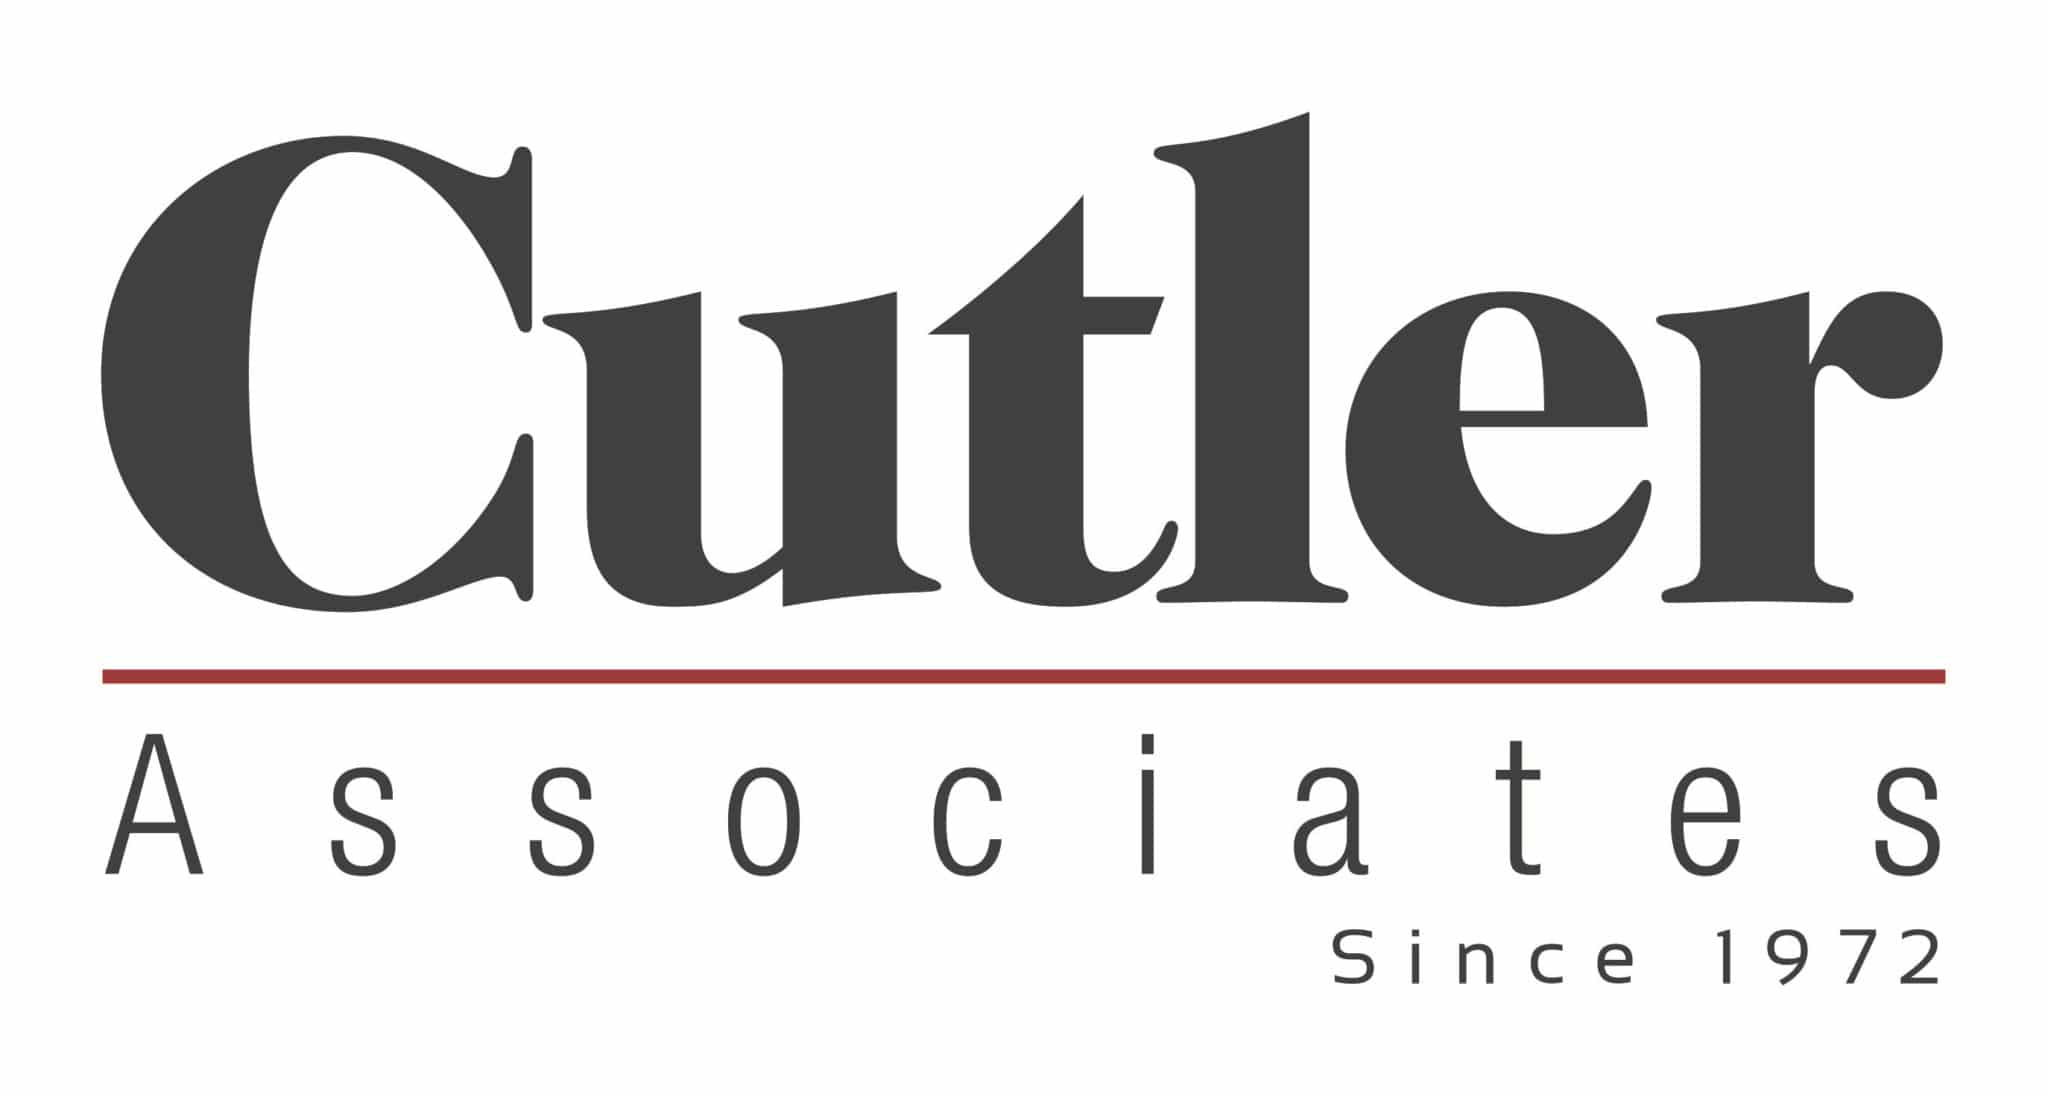 Cutler Associates Logo